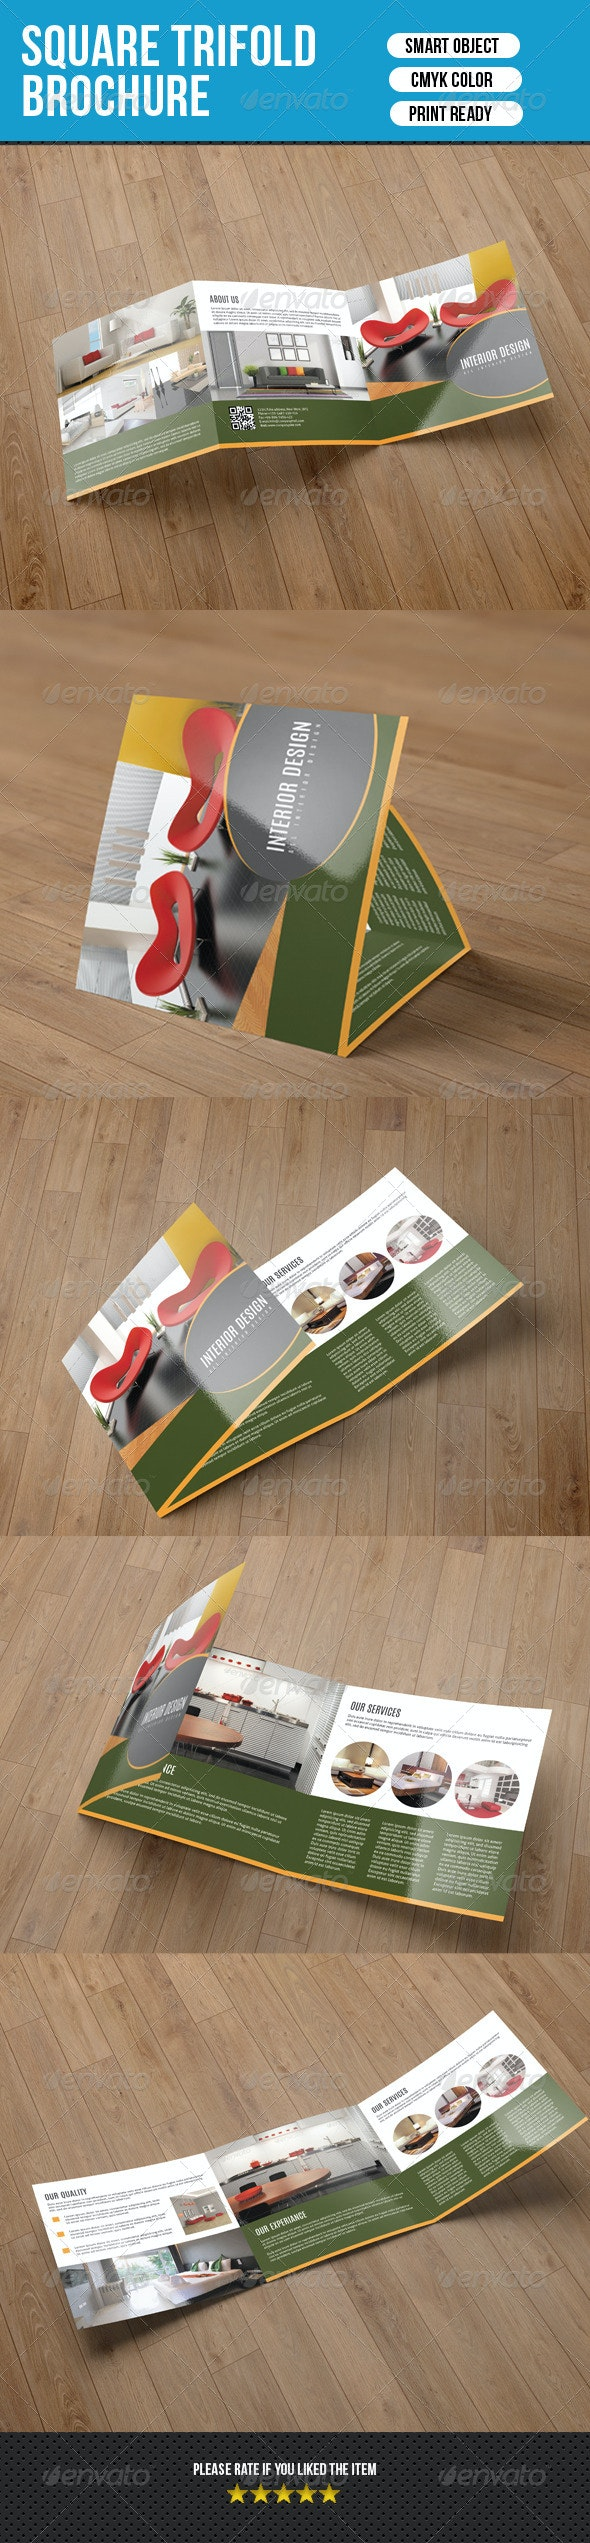 Square Trifold for Interior Desing-V16 - Corporate Brochures